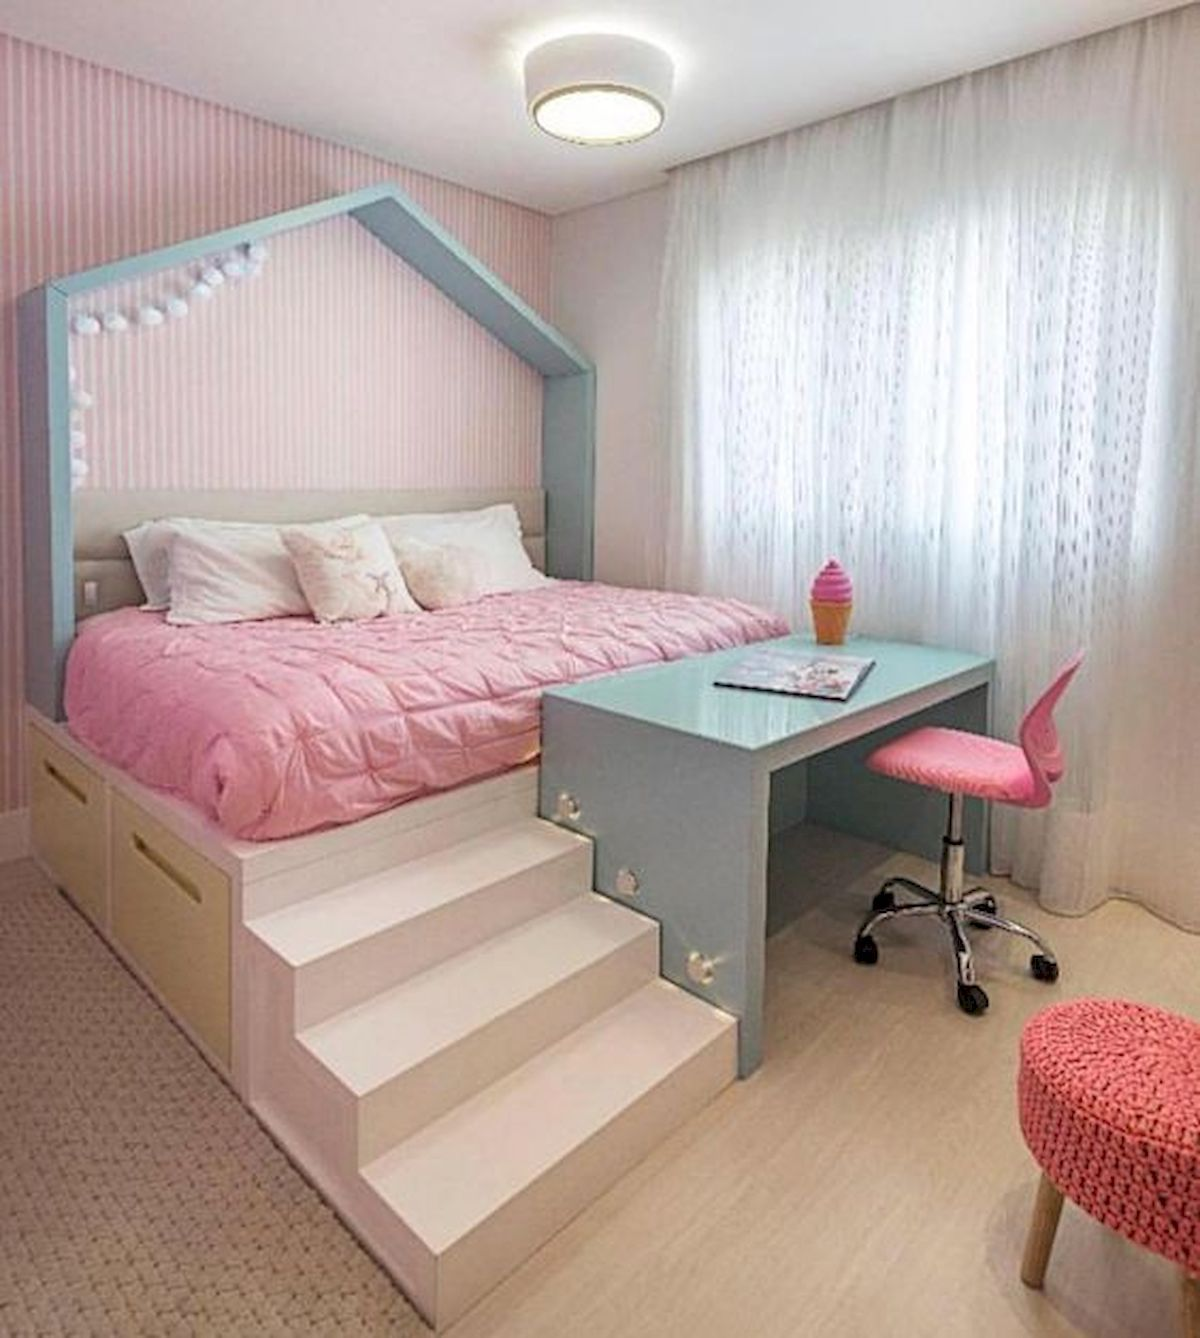 Adorable Nursery Idea: 33 Adorable Nursery Room Ideas For Baby Girl